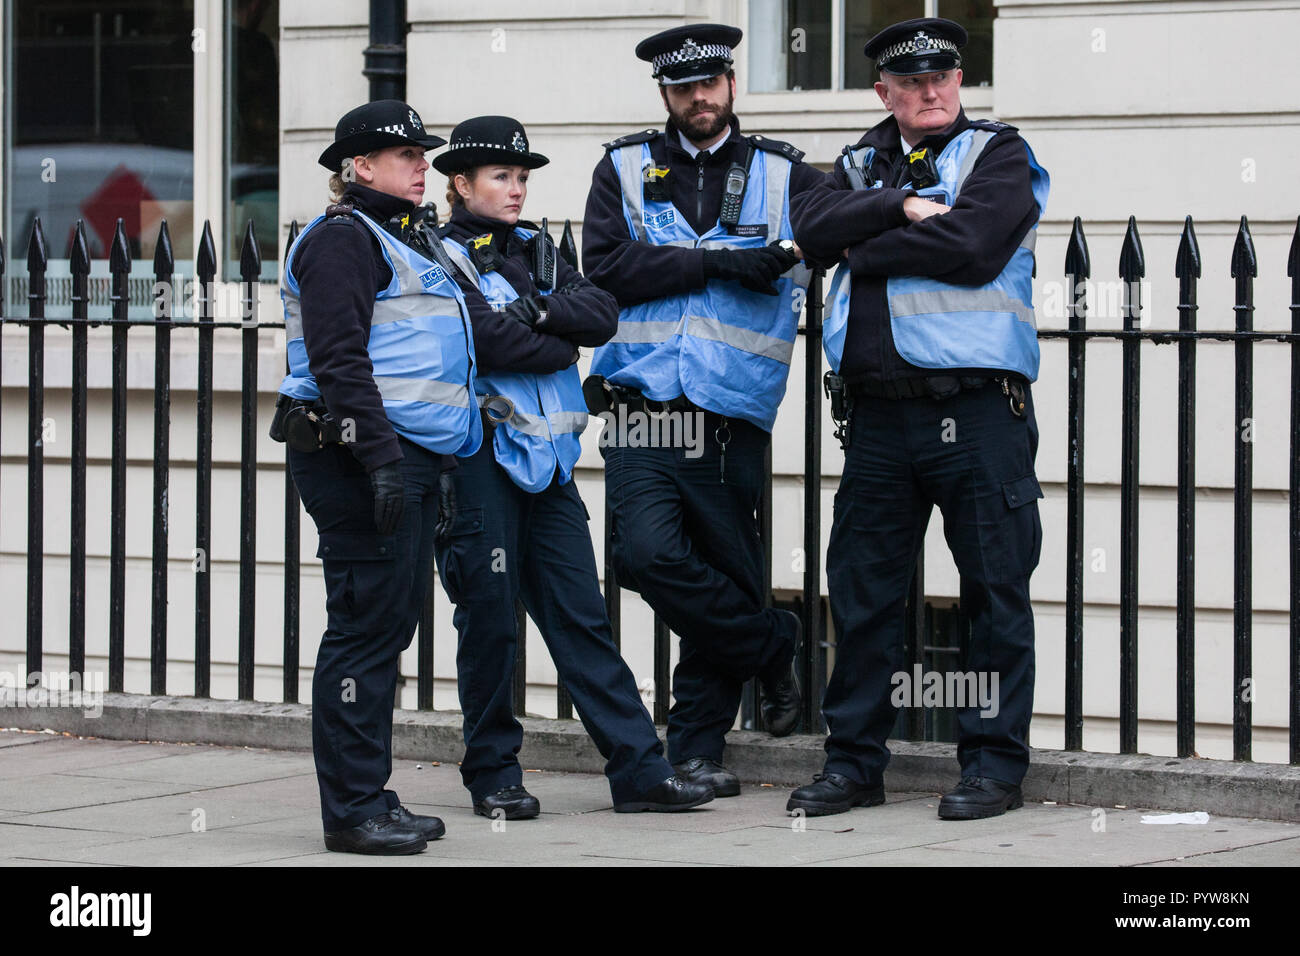 London, UK. 30th October, 2018. Police officers observe members and supporters of the Independent Workers of Great Britain (IWGB) trade union at a rally following a march with precarious workers from the offices of Transport for London to the University of London via the Court of Appeal in support of Uber drivers who are seeking employment rights. The Court of Appeal will today hear an appeal by Uber against a ruling that its drivers are employees rather than self-employed workers. Credit: Mark Kerrison/Alamy Live News - Stock Image